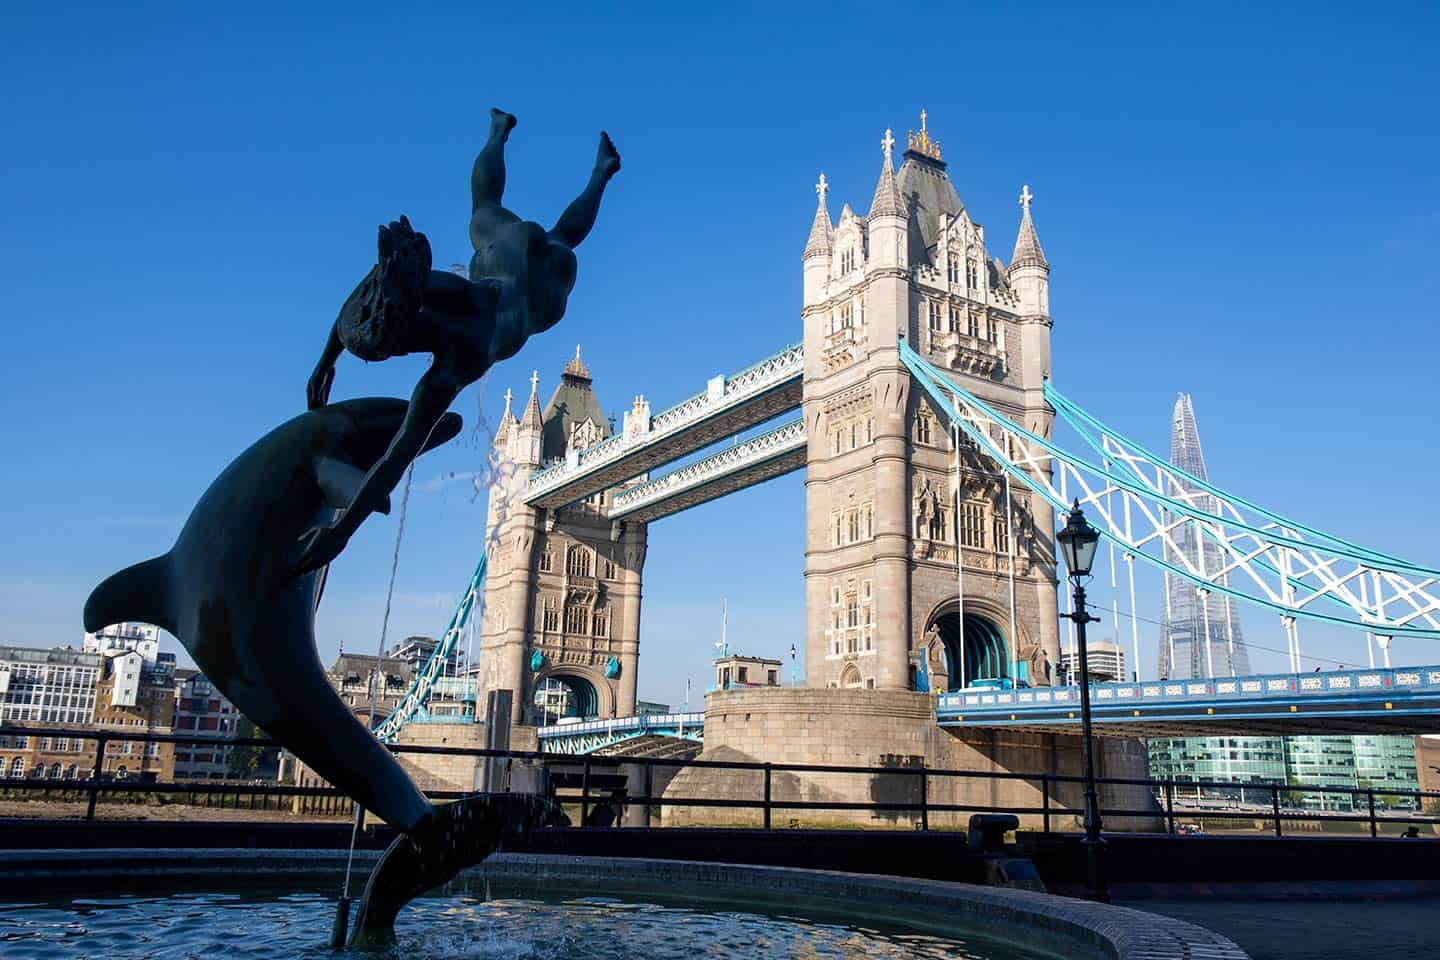 Image of Tower Bridge Londonand the famous Girl With A Dolphin sculpture